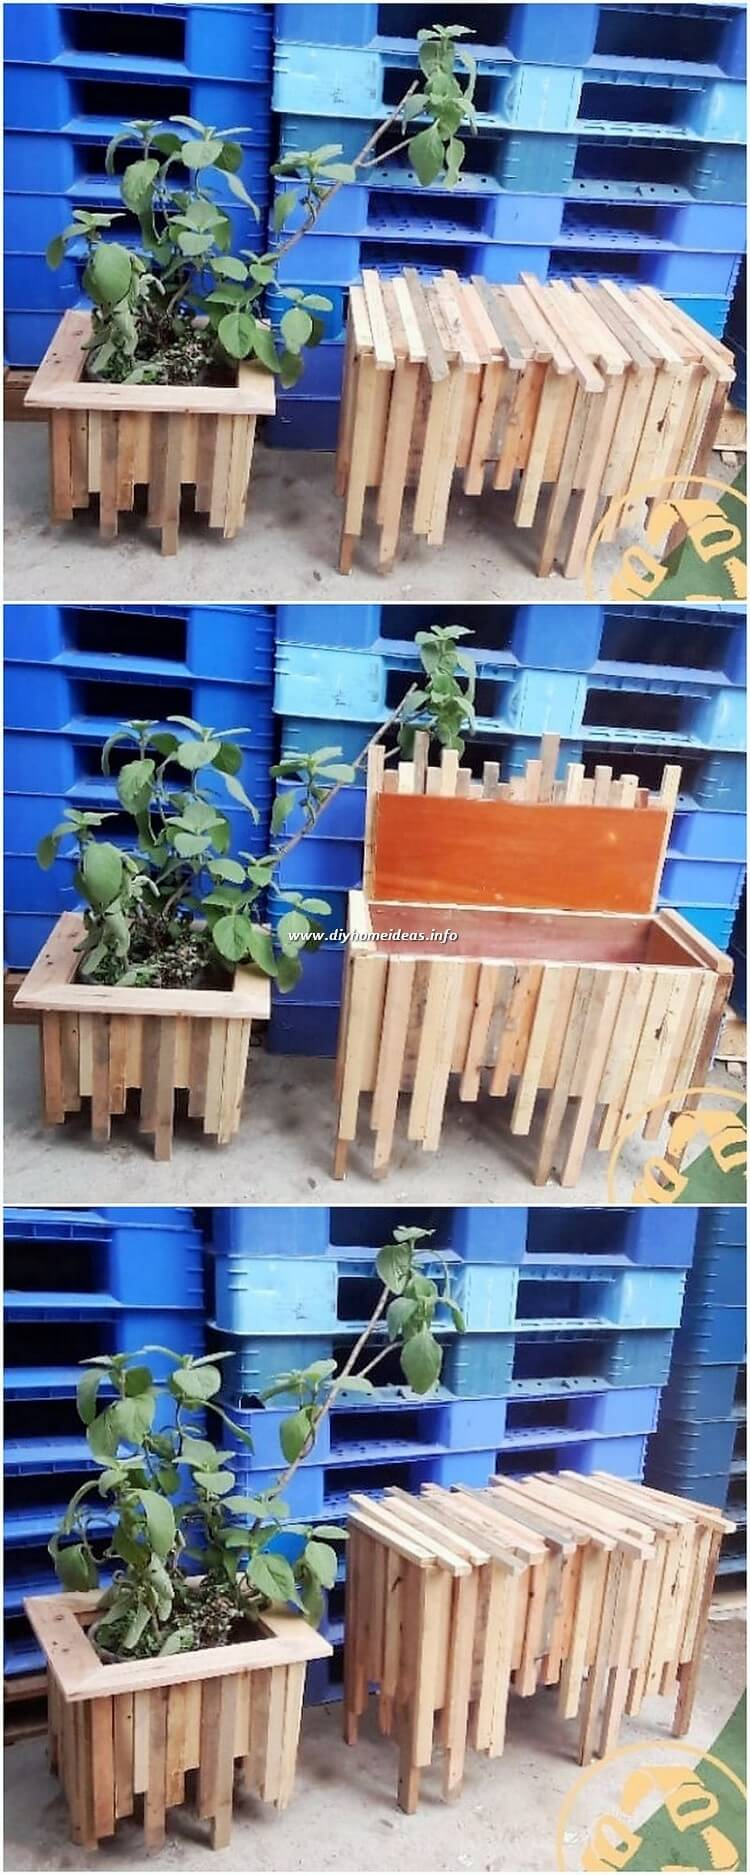 Pallet Planter and Seat with Storage